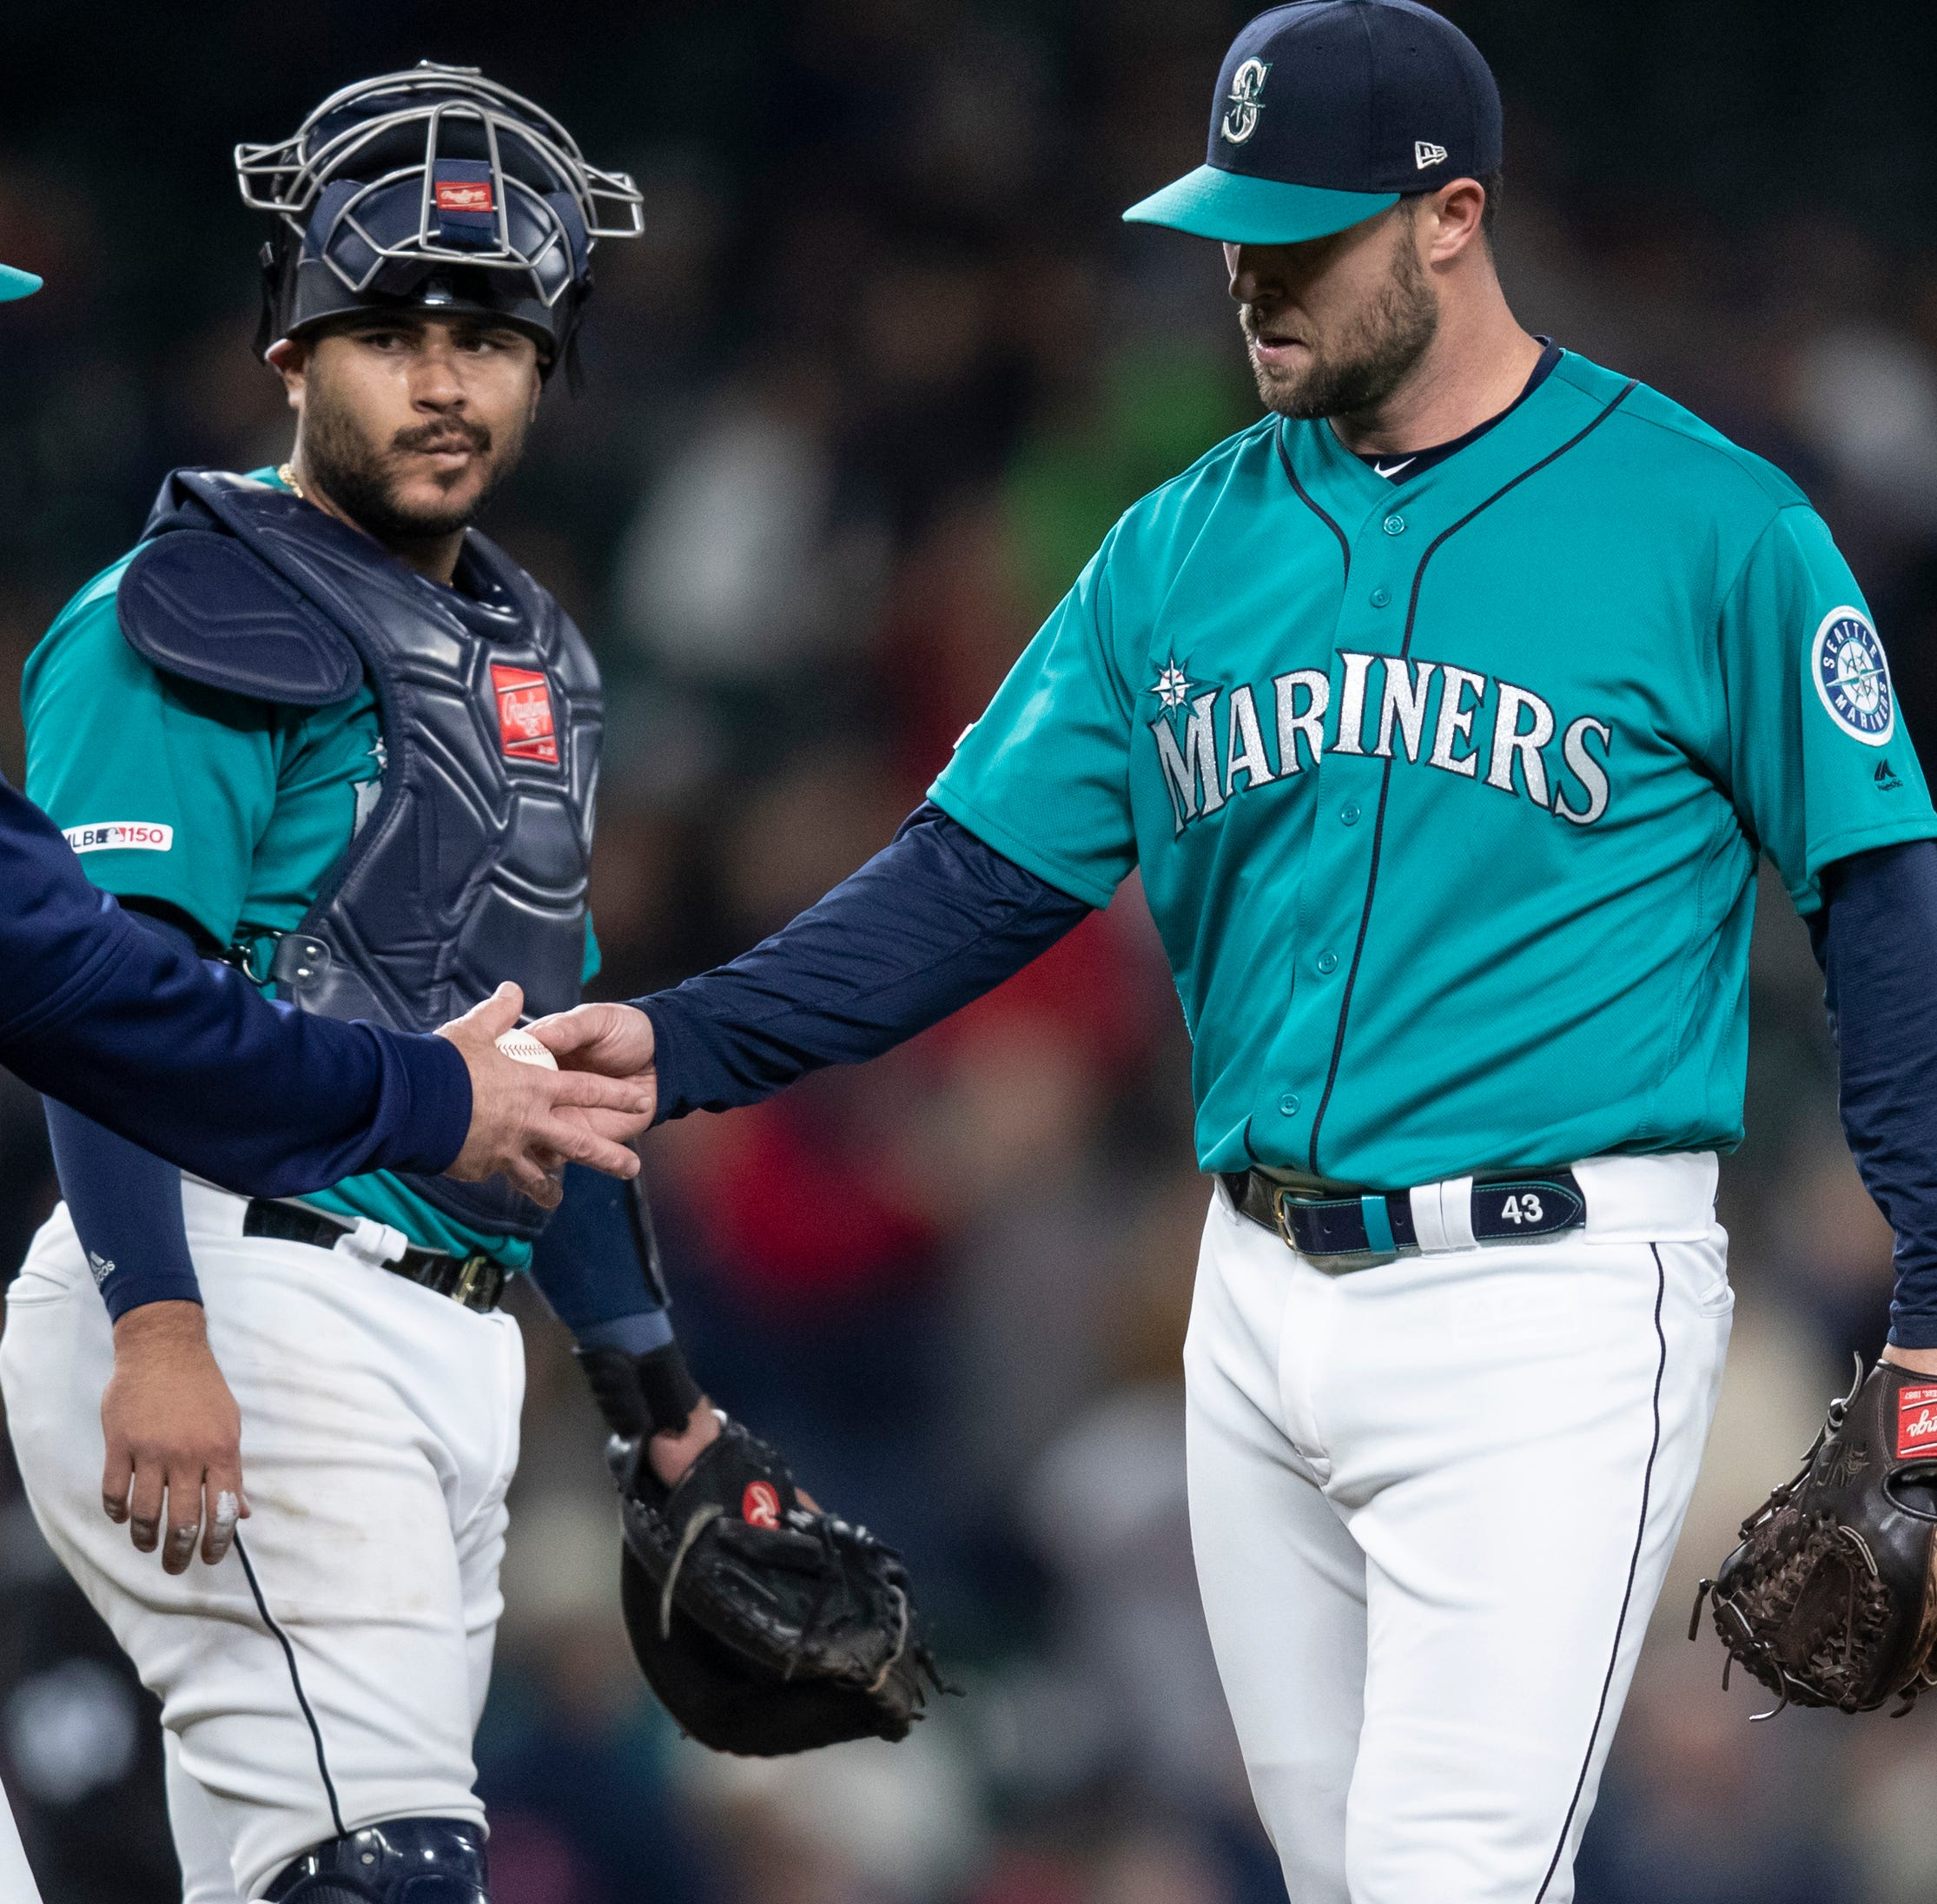 Mariners handed painful first loss of '19 season